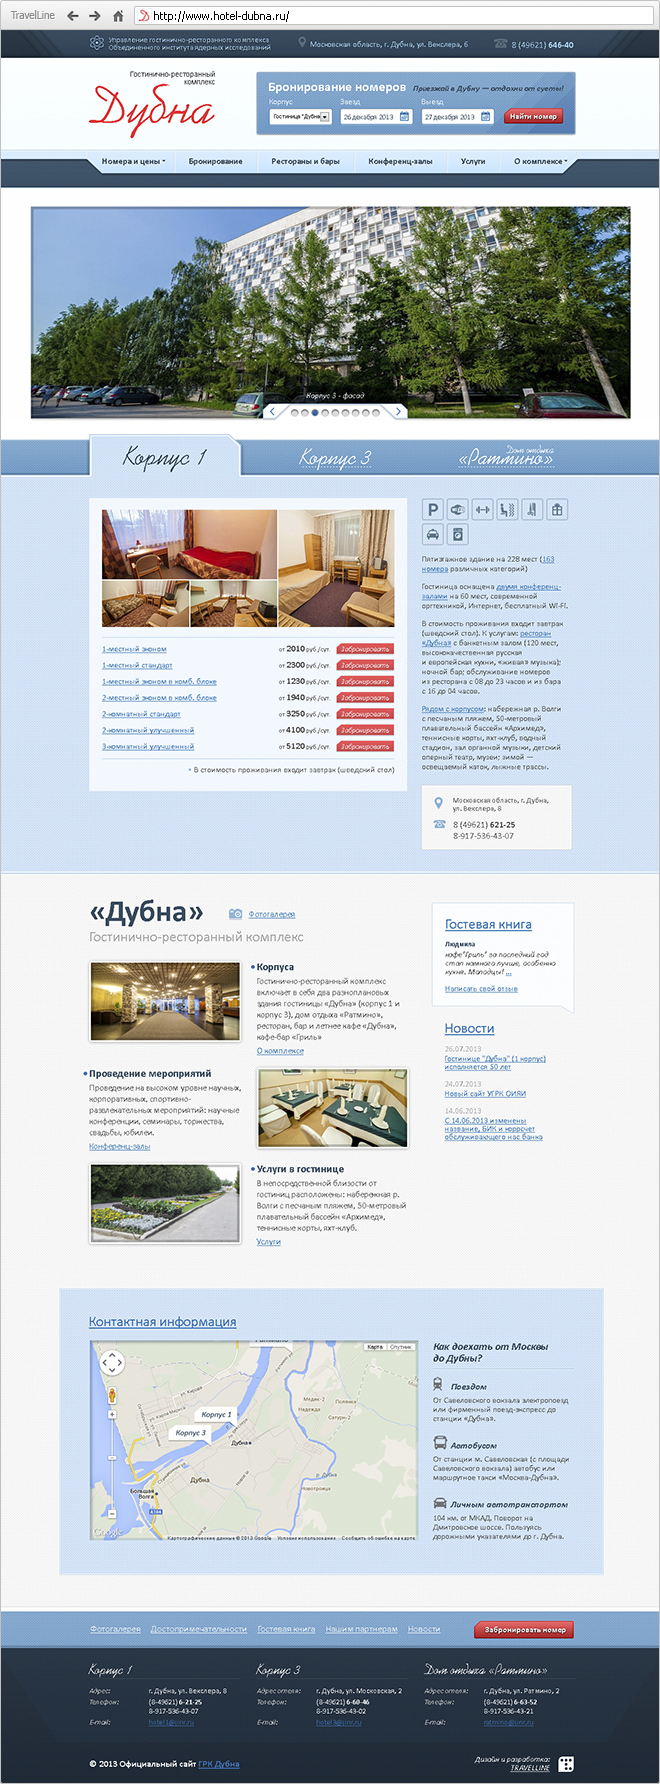 Website of Dubna Hotel